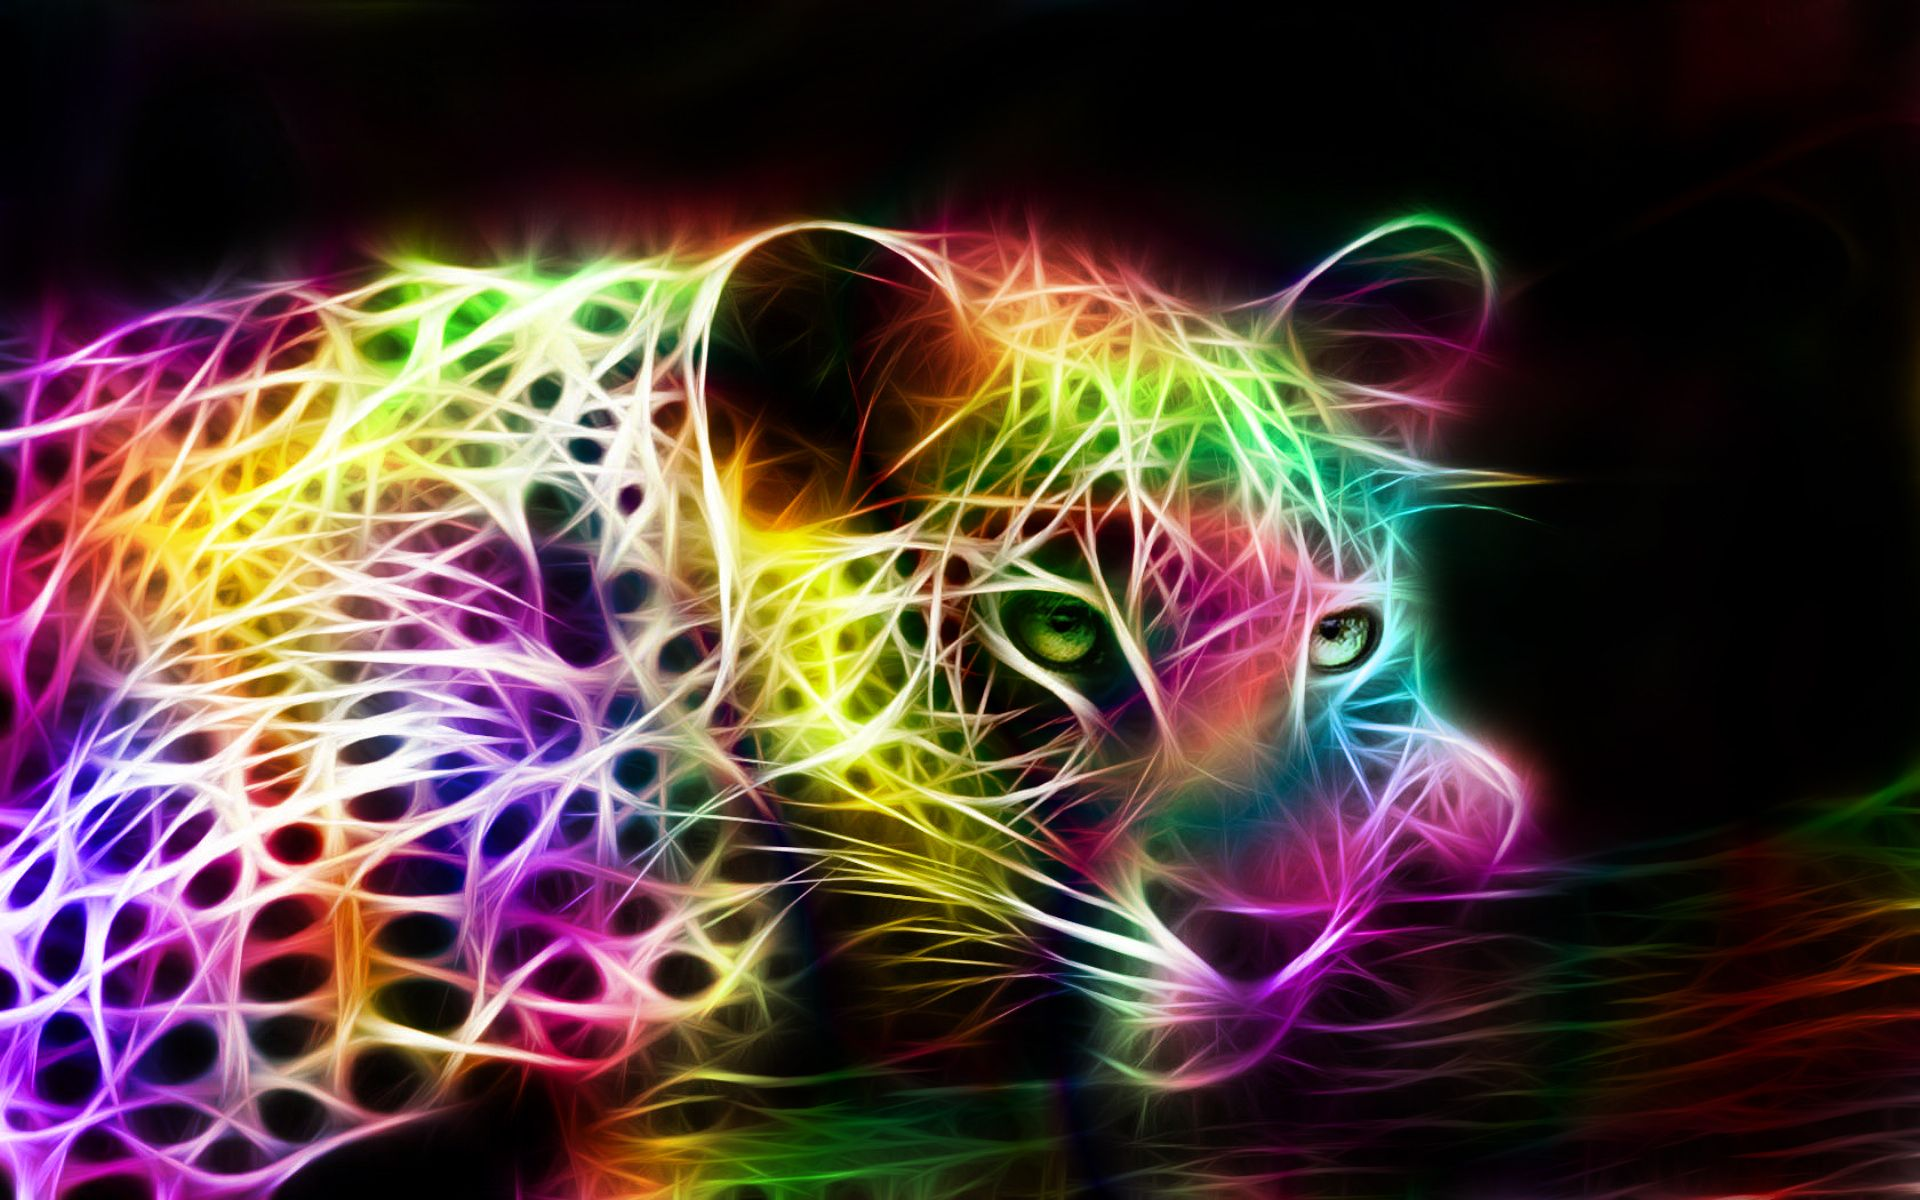 Beautiful Wallpaper Horse Colorful - a54430caf995fbdbaea4bb59cfa95328  HD_639218.jpg